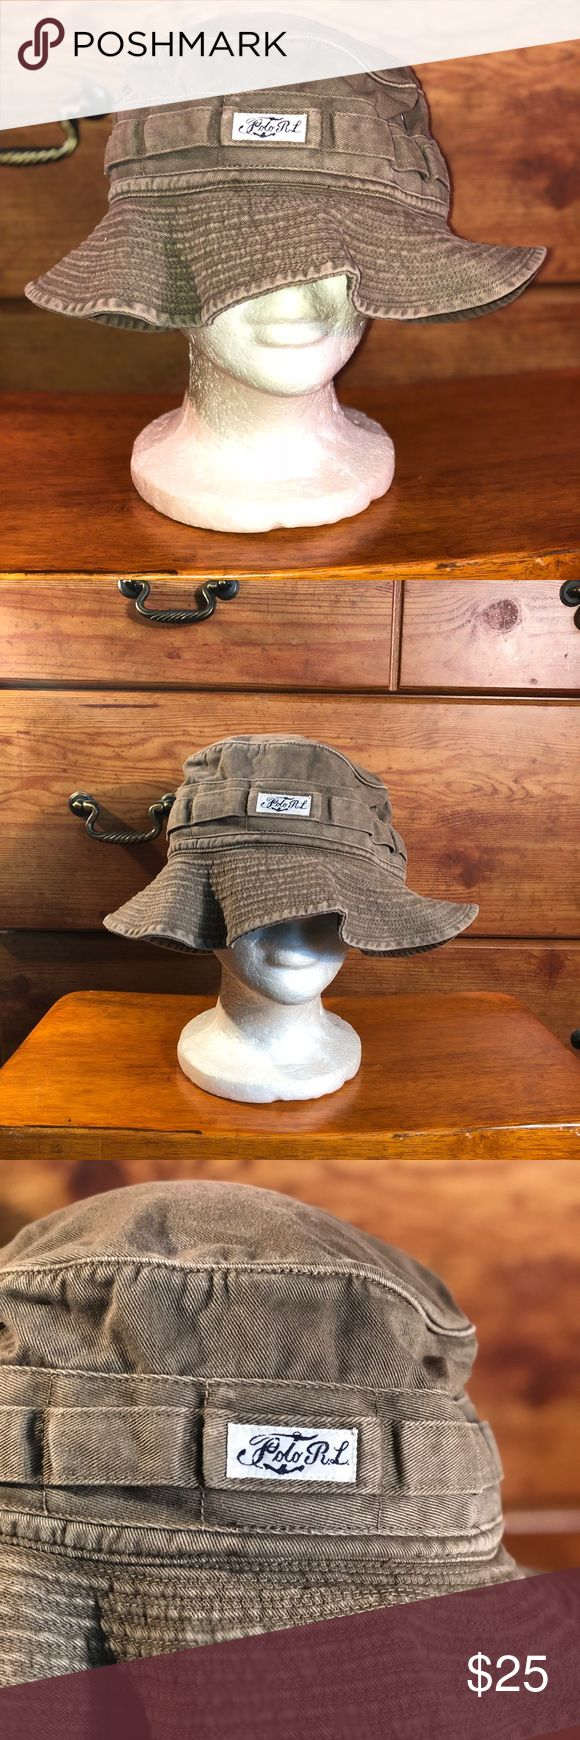 Polo Ralph Lauren Mens Bucket Hat Sz S/M Polo by Ralph Lauren Men's Bucket Hat Sz S/M Color: Brownish tan (Small White & Blue Polo R.L Patch) USED  Condition:10/10 Polo by Ralph Lauren Accessories Hats